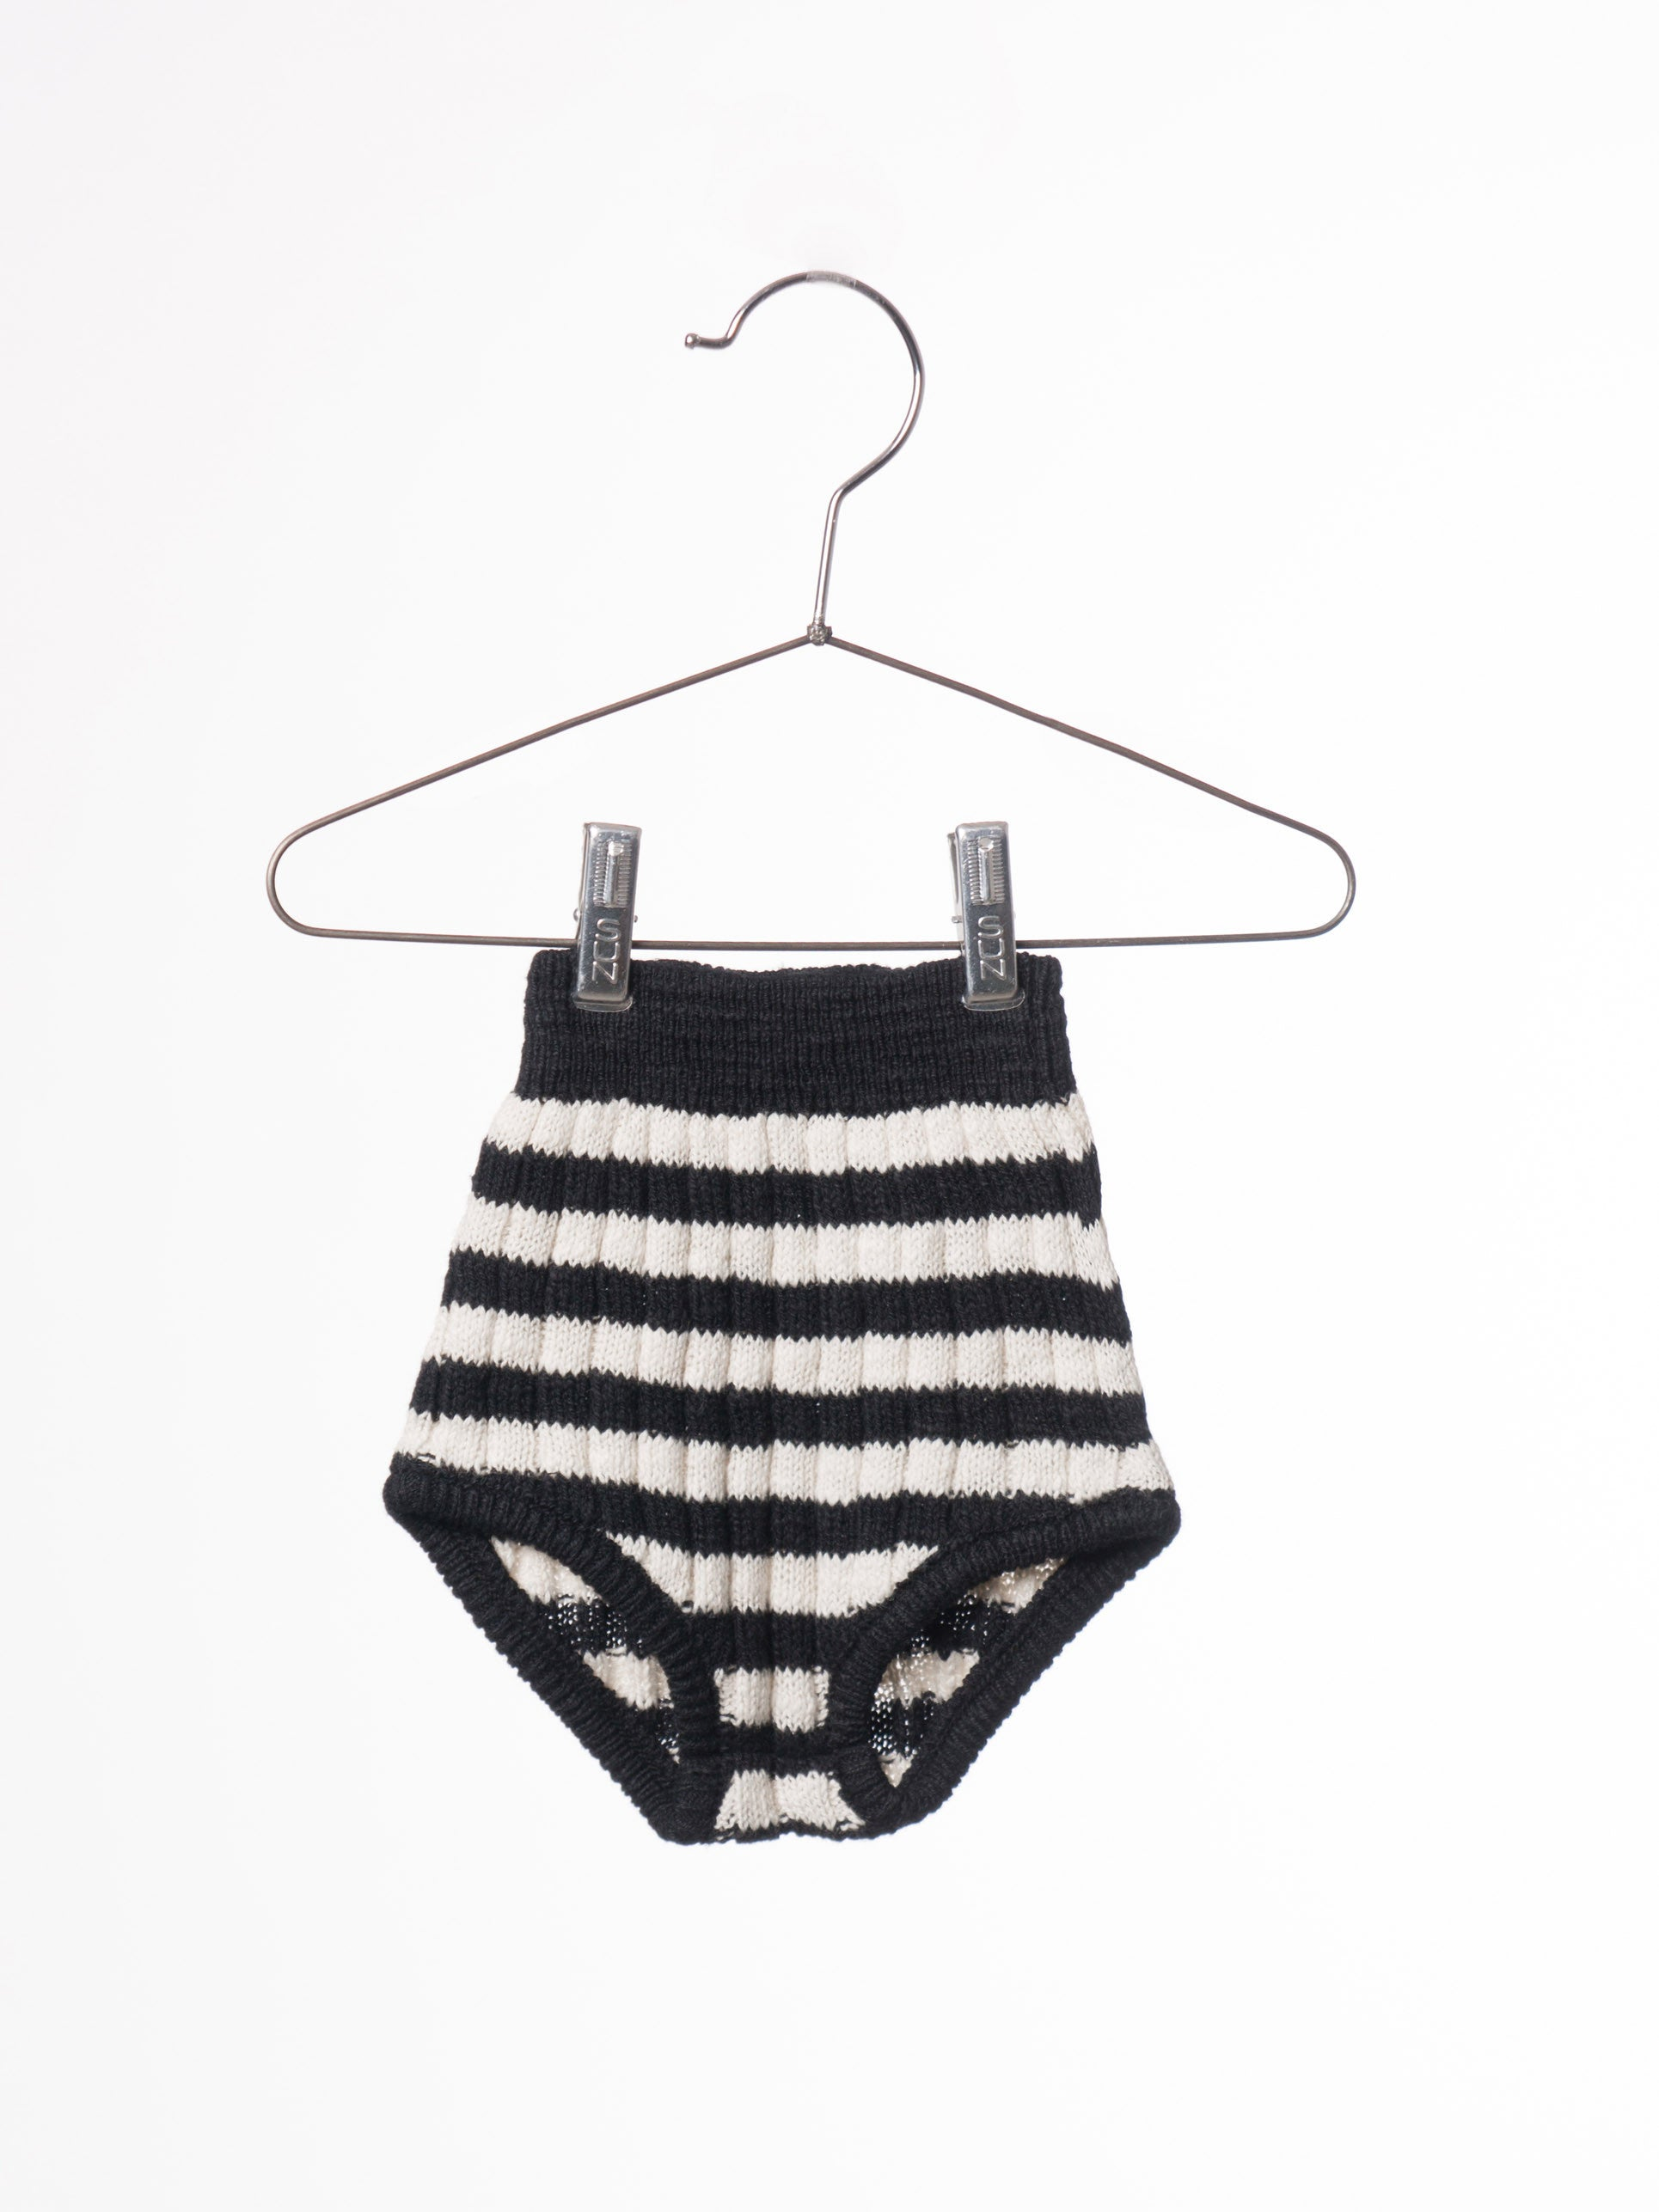 Bobo Choses Black Baby Knitted Culotte - Ladida